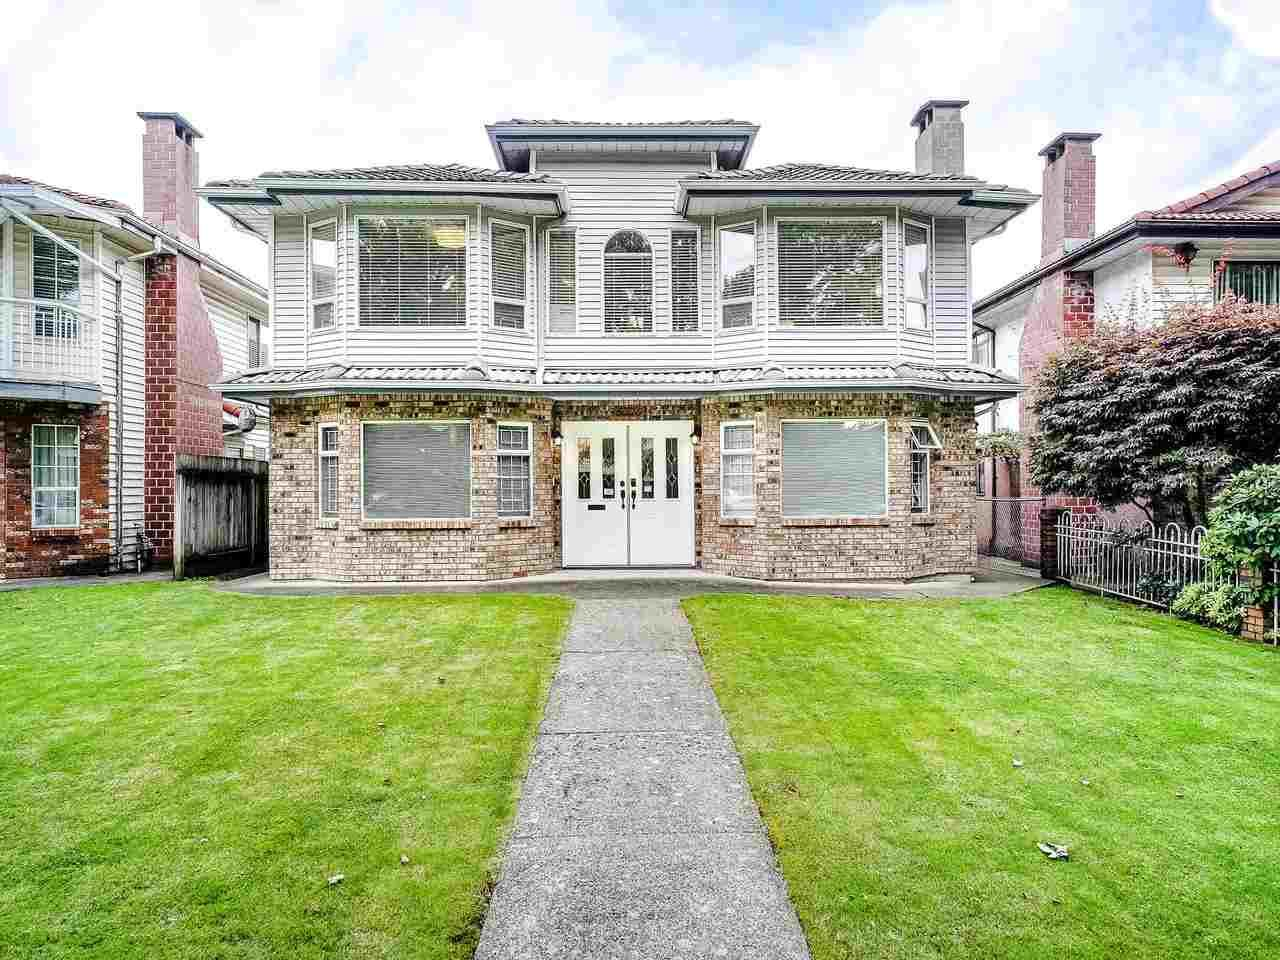 Main Photo: 5770 ST. MARGARETS Street in Vancouver: Killarney VE House for sale (Vancouver East)  : MLS®# R2486517